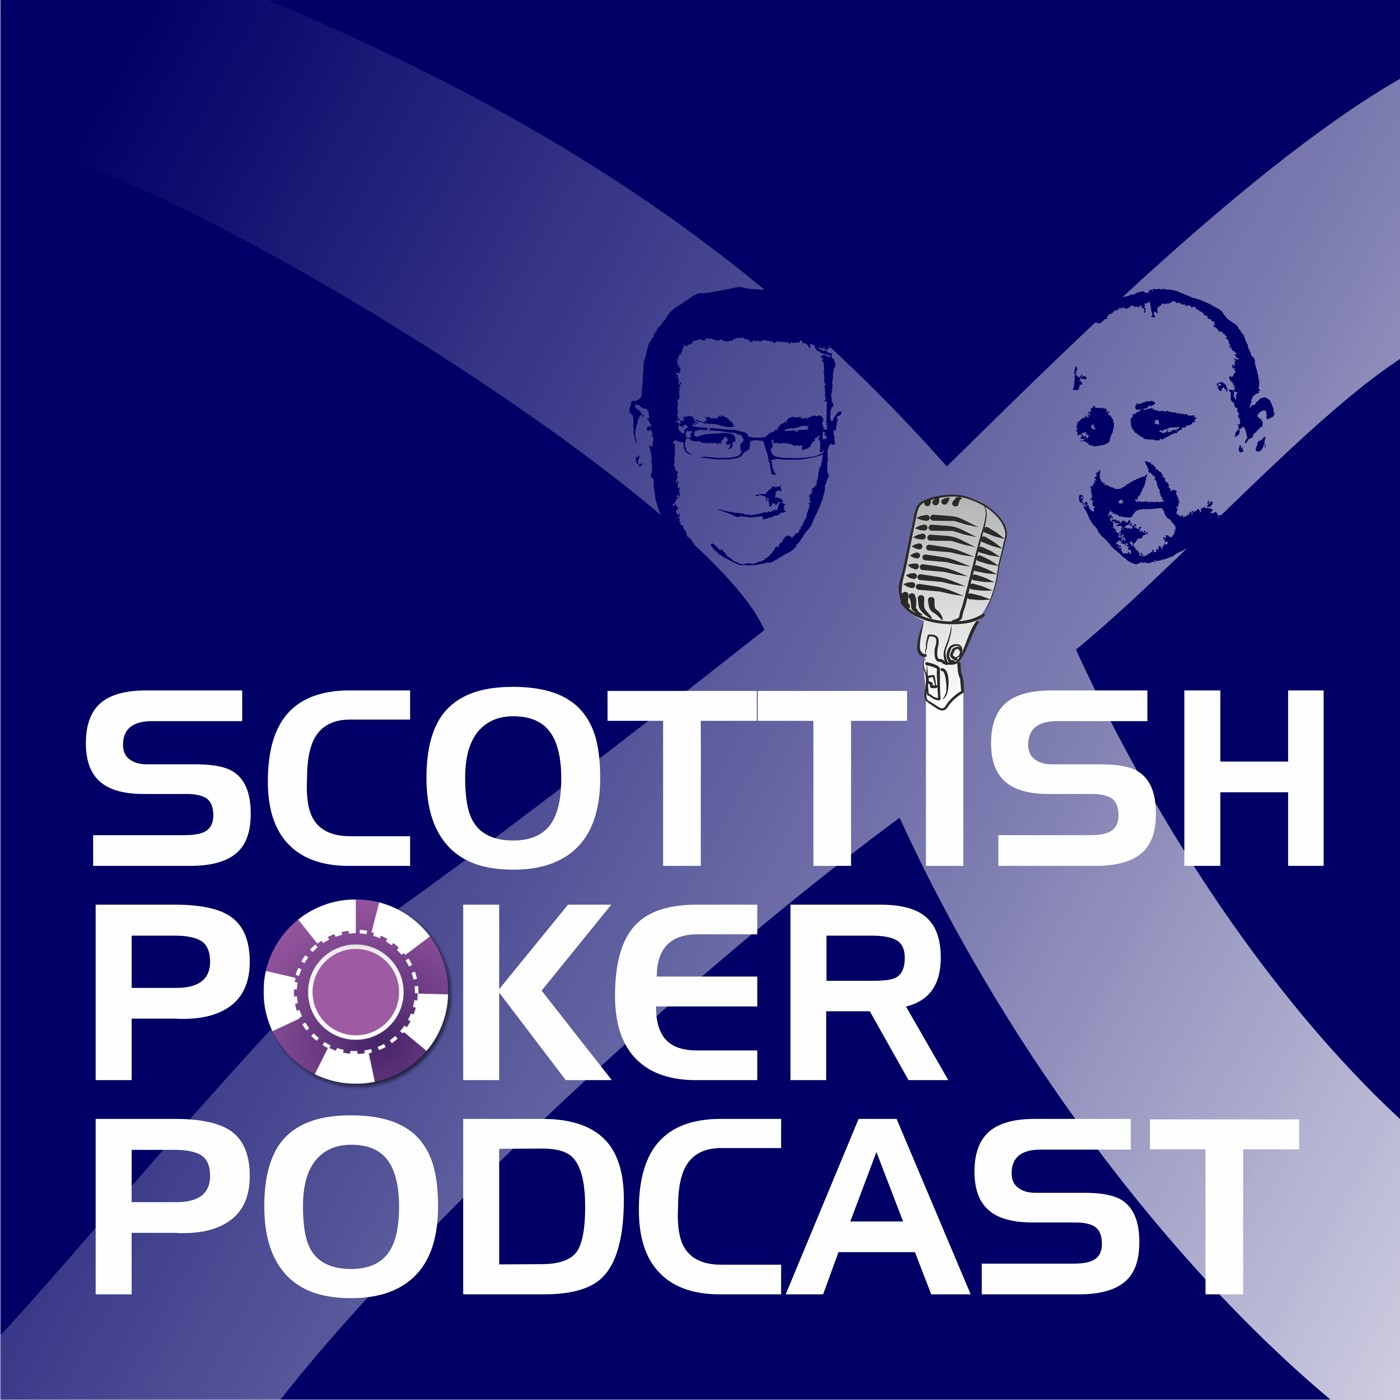 Scottish Poker Podcast